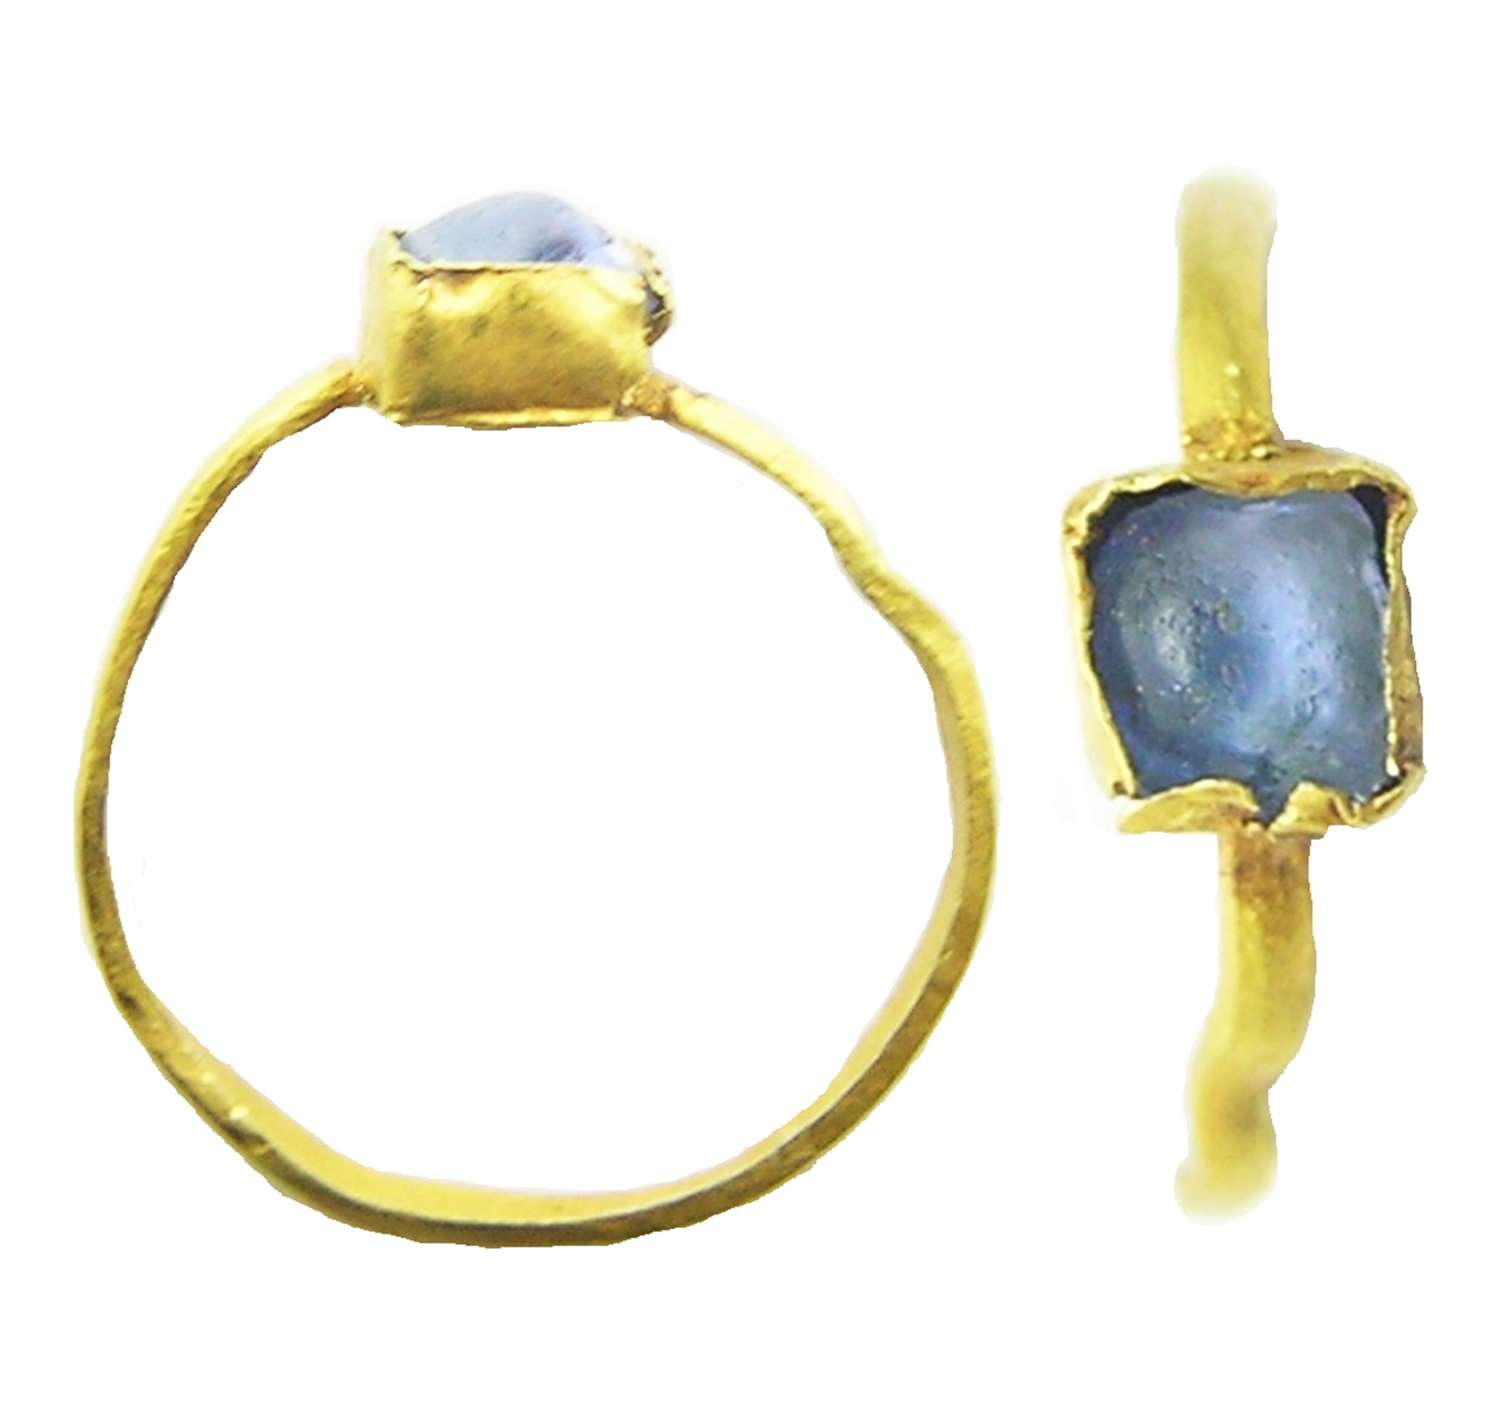 Medieval gold penny ring set with blue glass gemstone